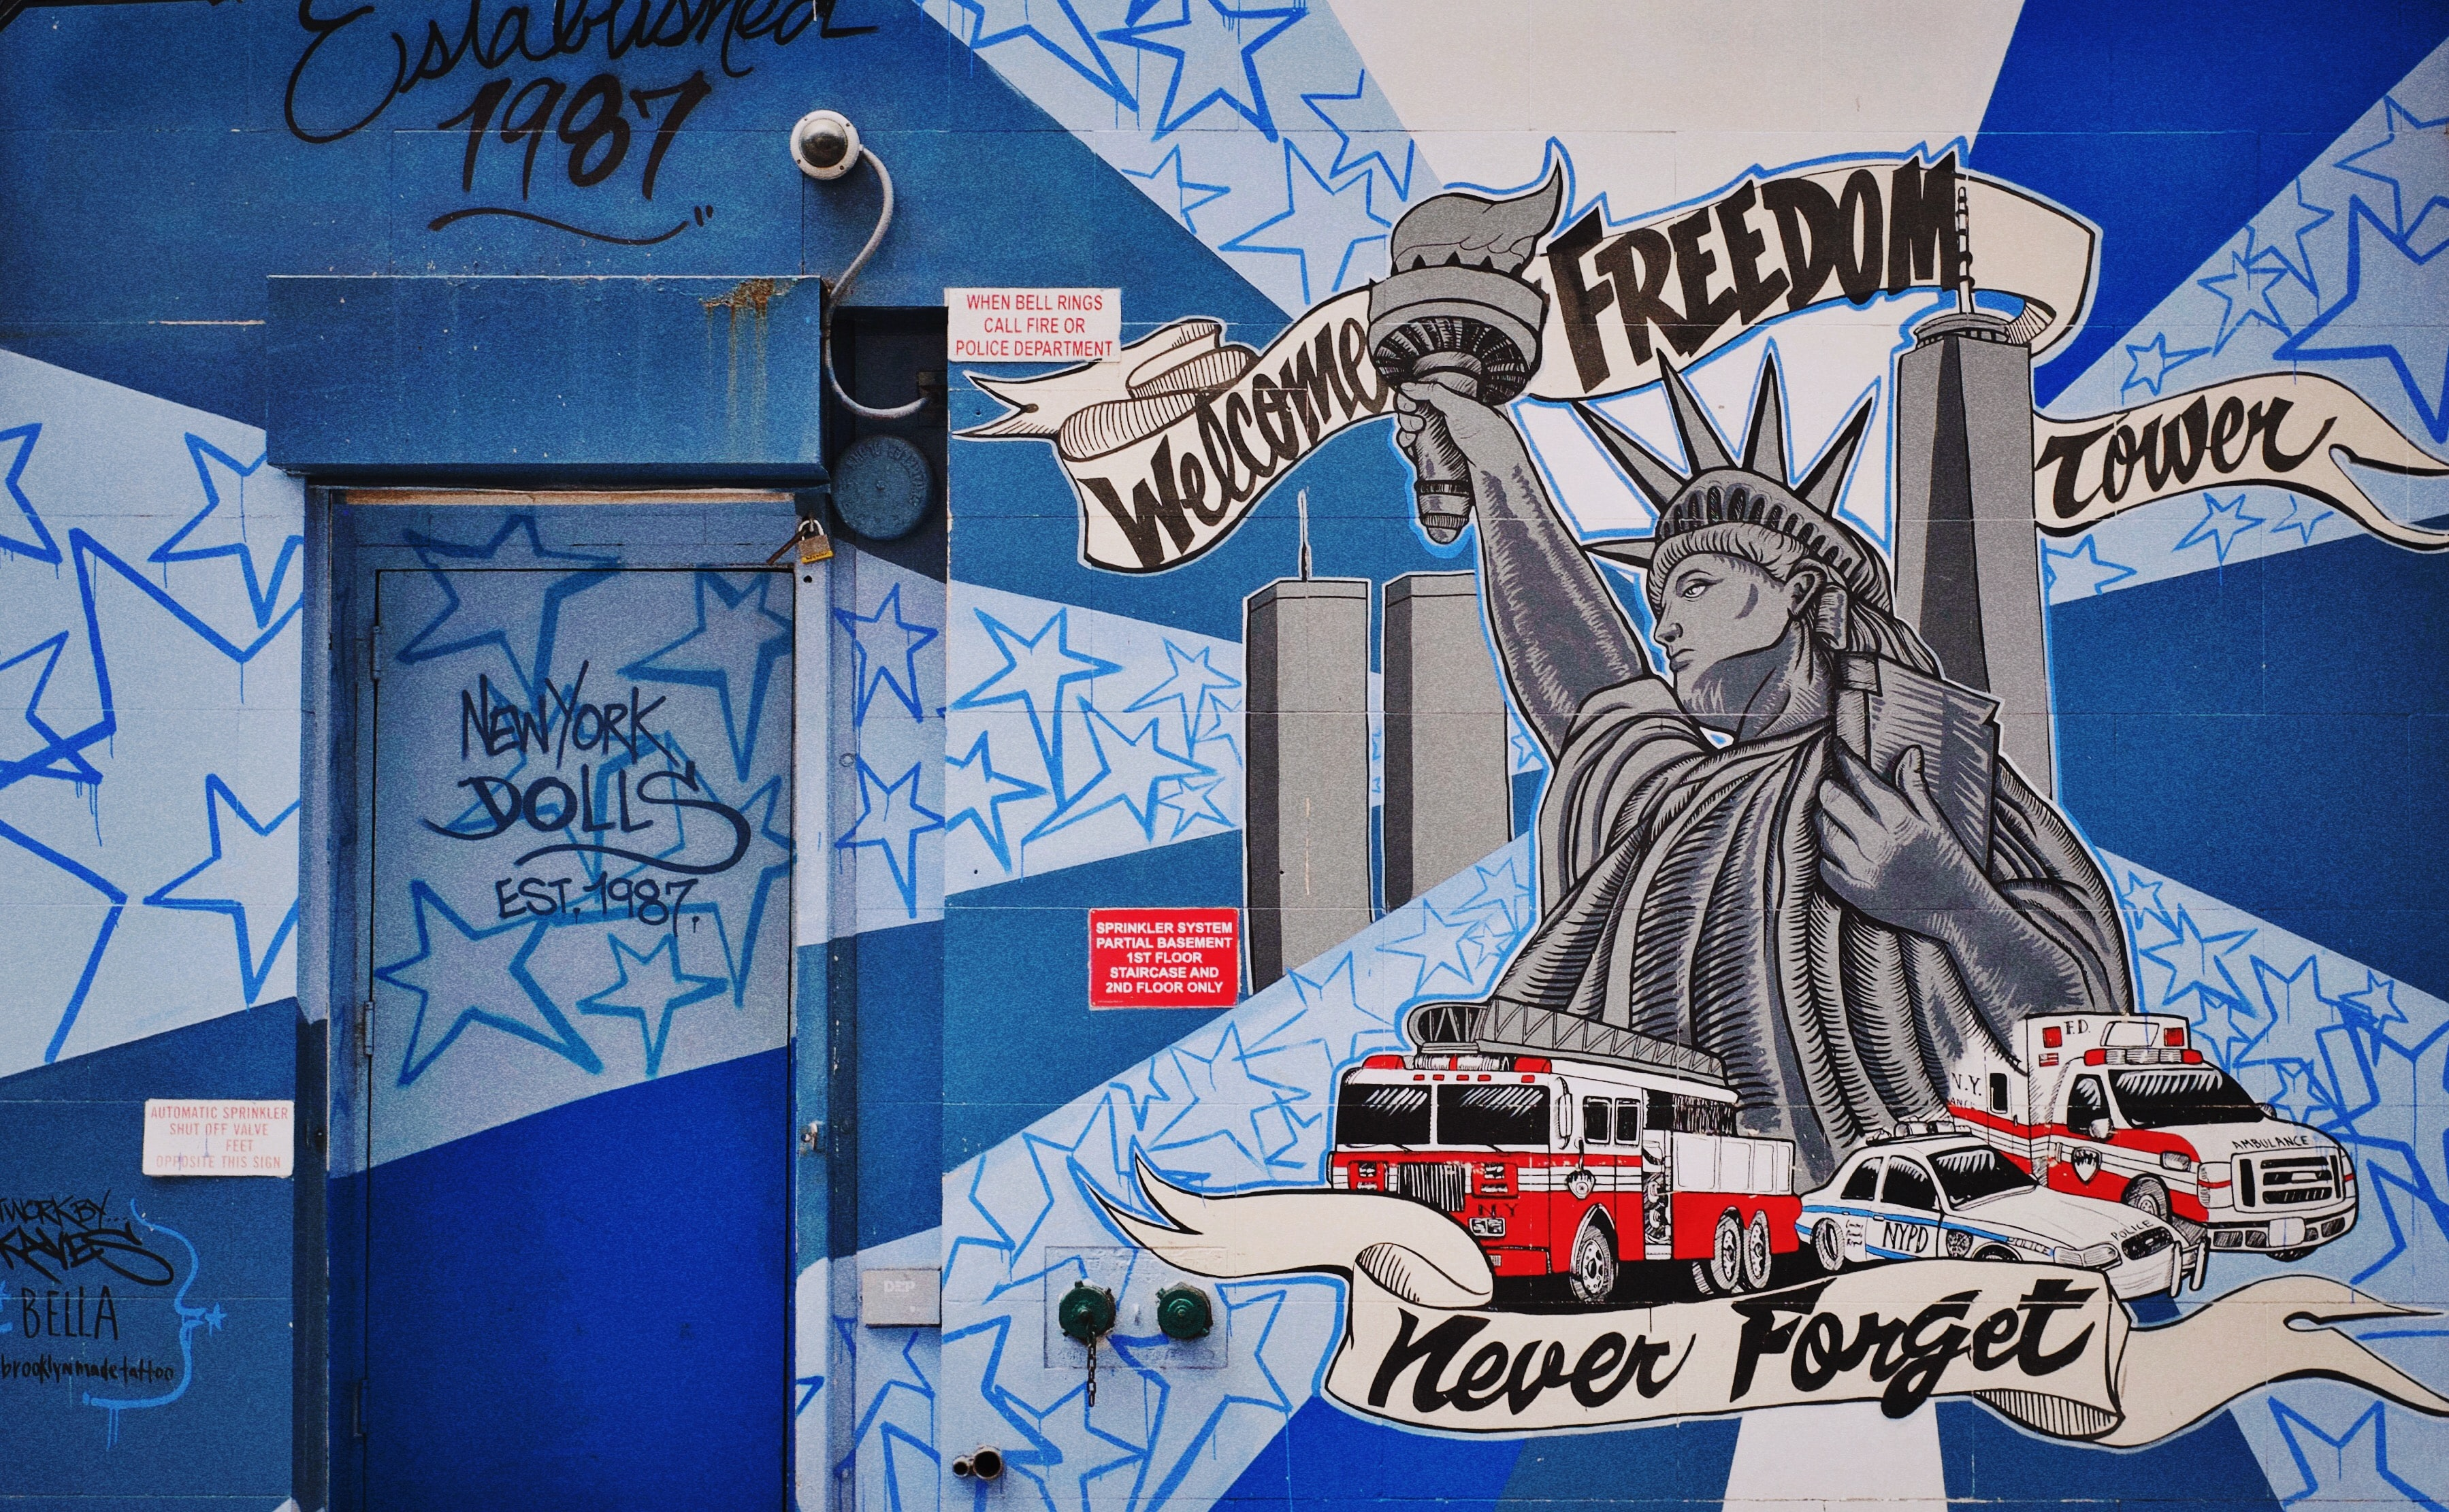 Statue of Liberty printed on blue and white wall